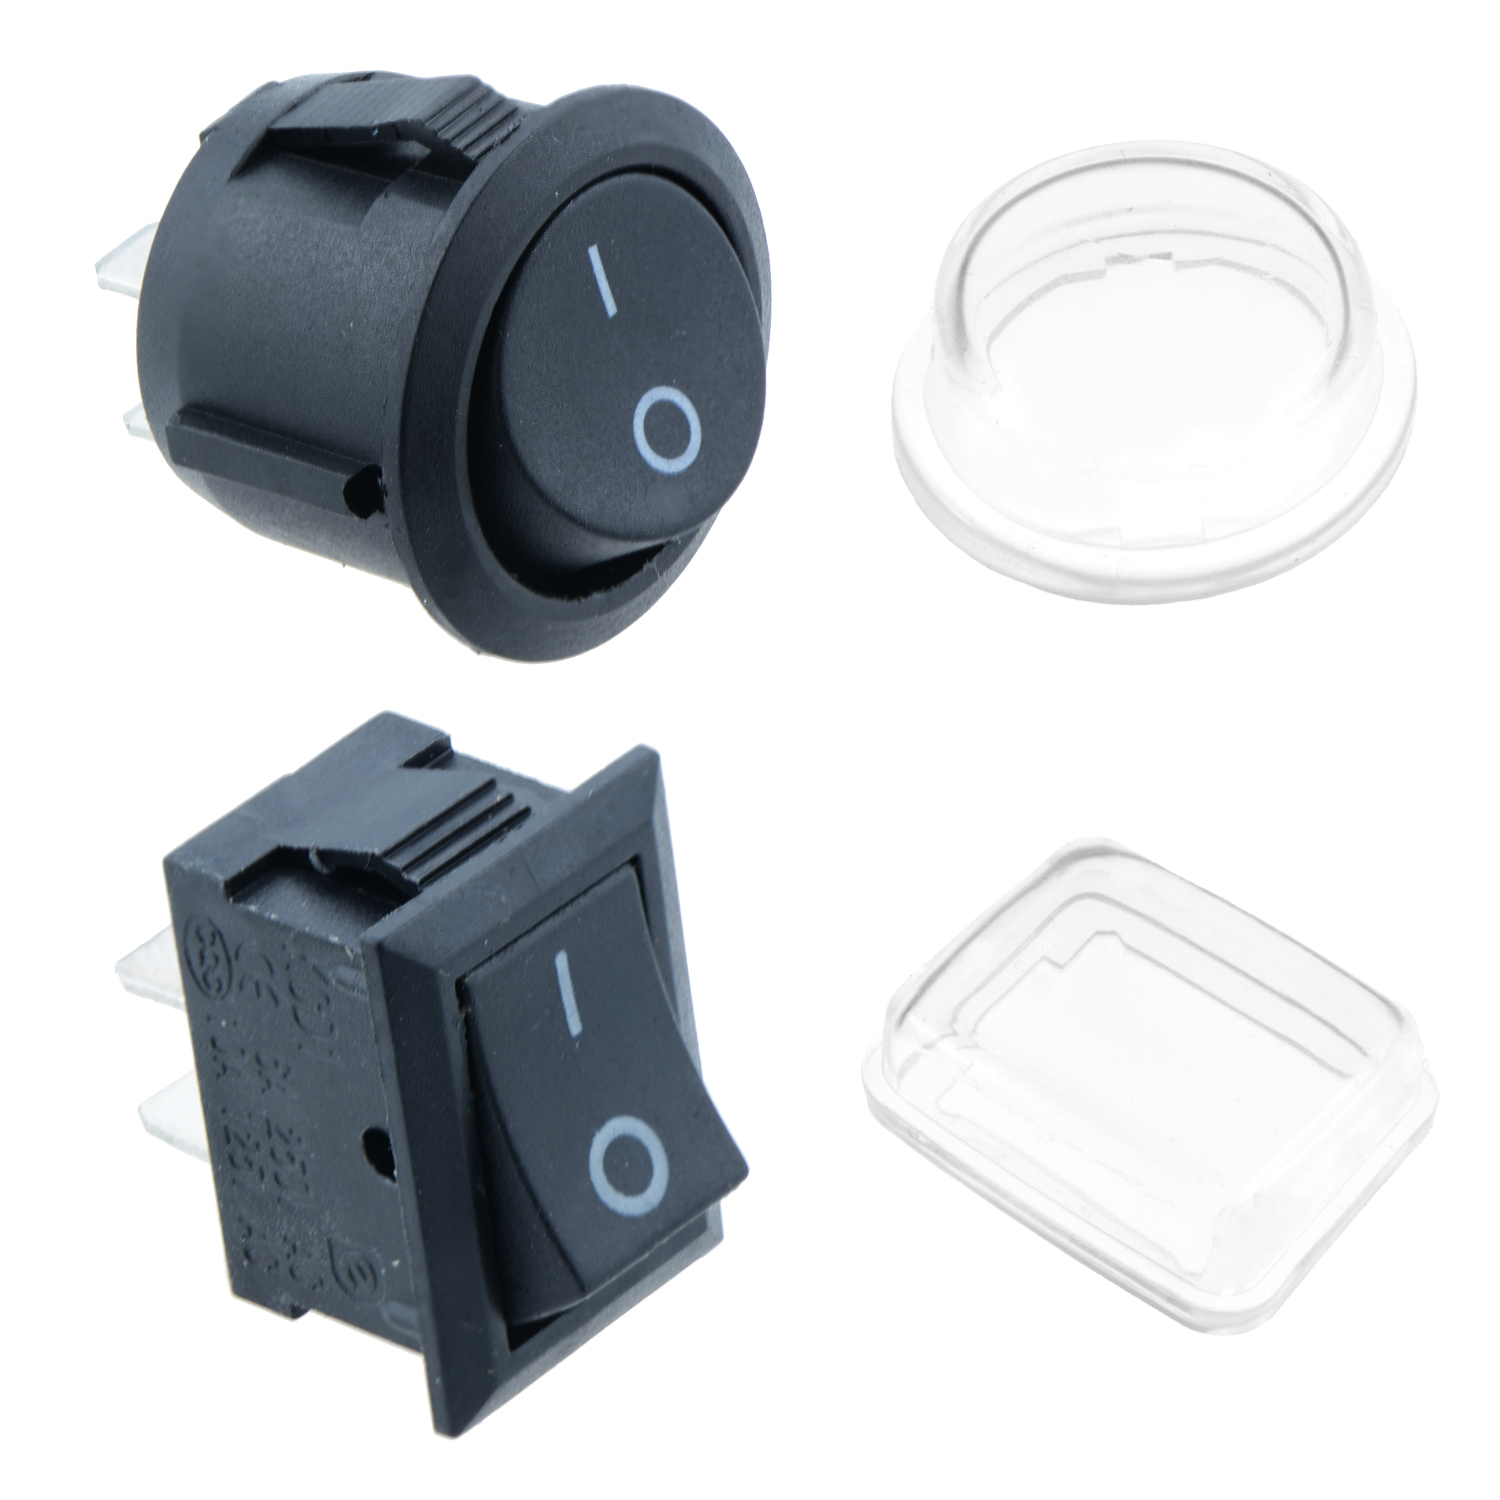 Insulated Switch Cover : On off round rectangle rocker switch waterproof cover